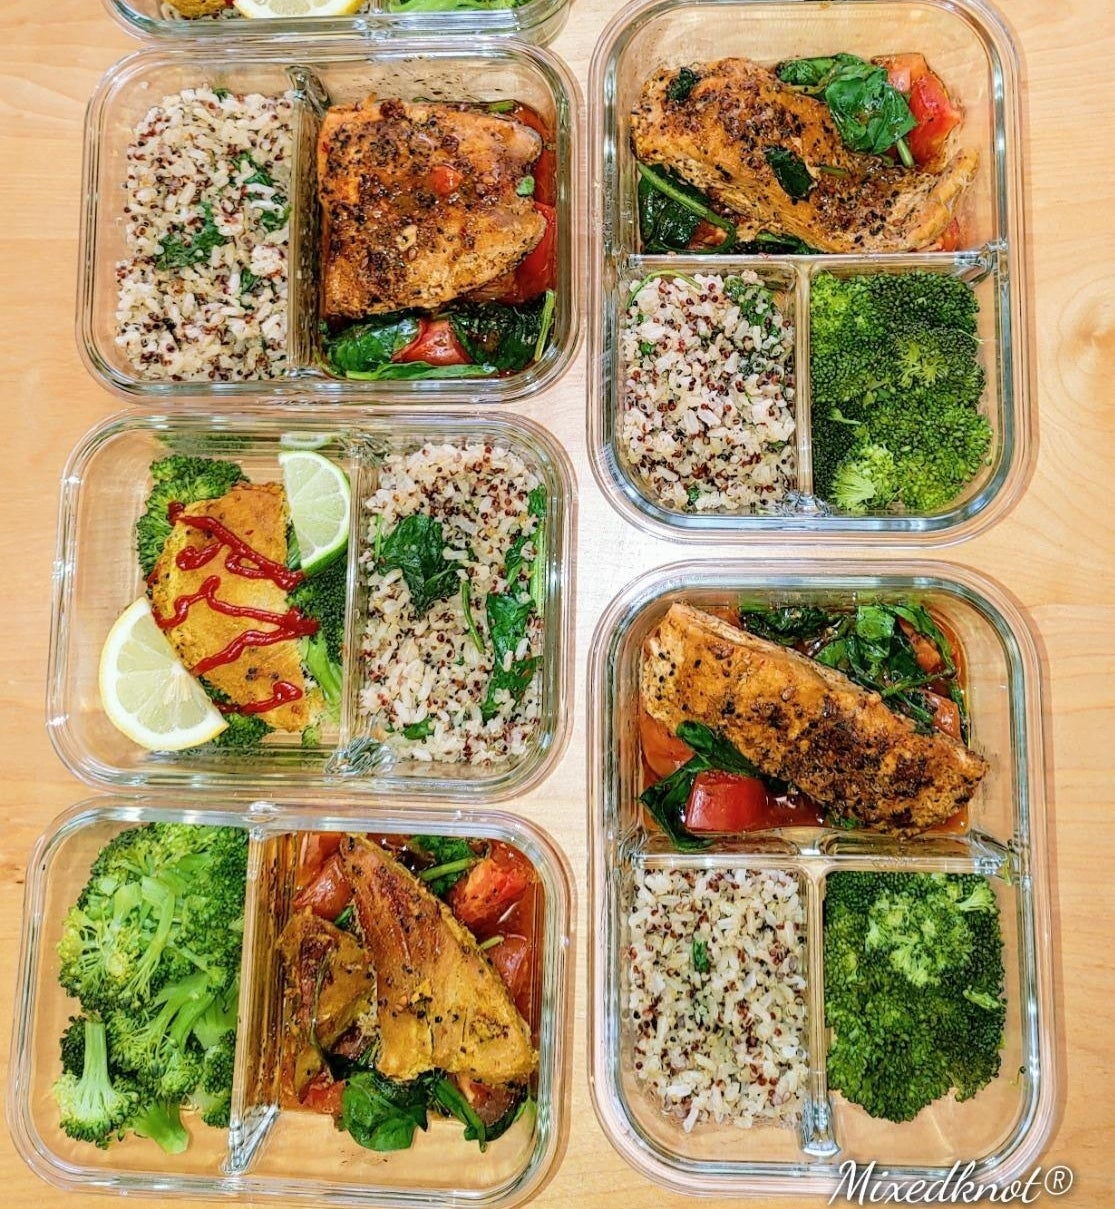 A reviewer's photo showing five prepped meals in the glass containers